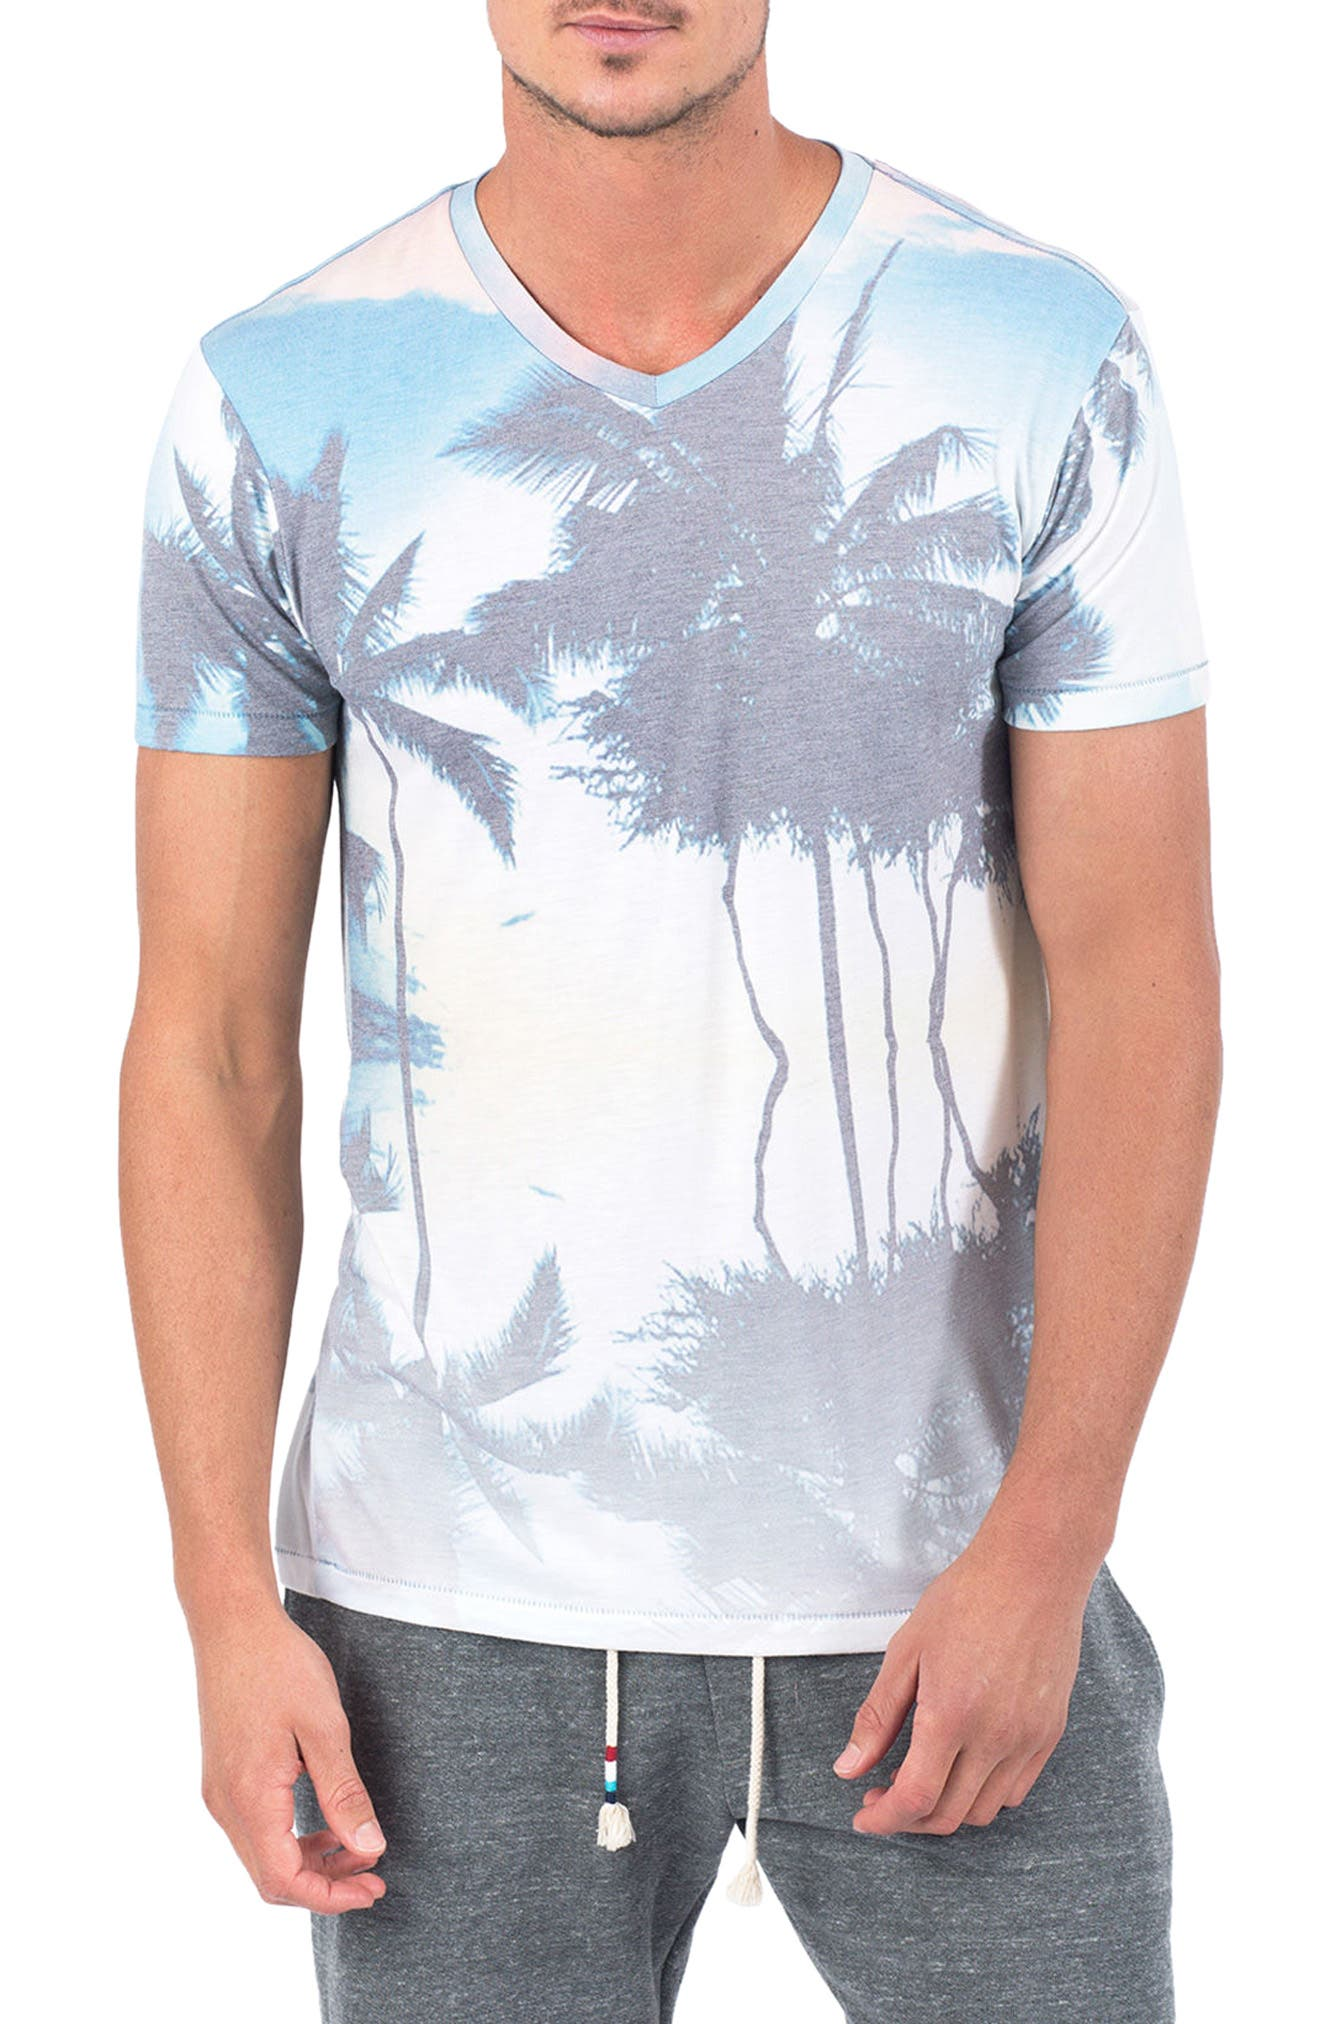 Off Tropic T-Shirt,                             Main thumbnail 1, color,                             Off Tropic